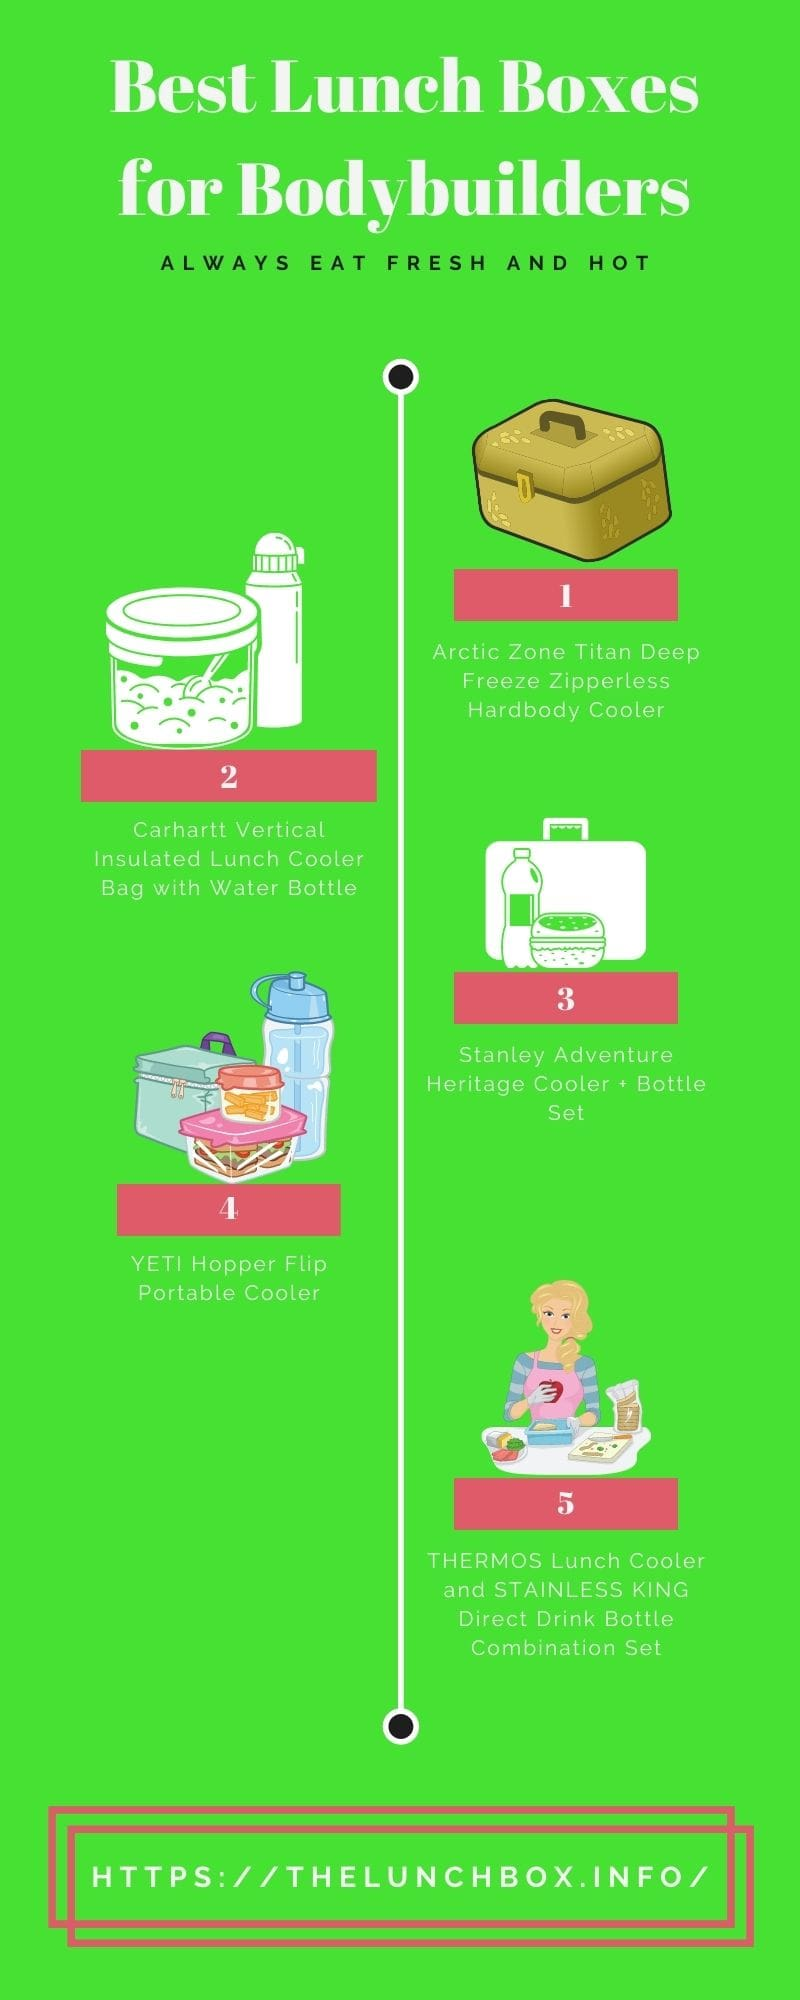 Infographic of Best Lunch Boxes for Bodybuilders